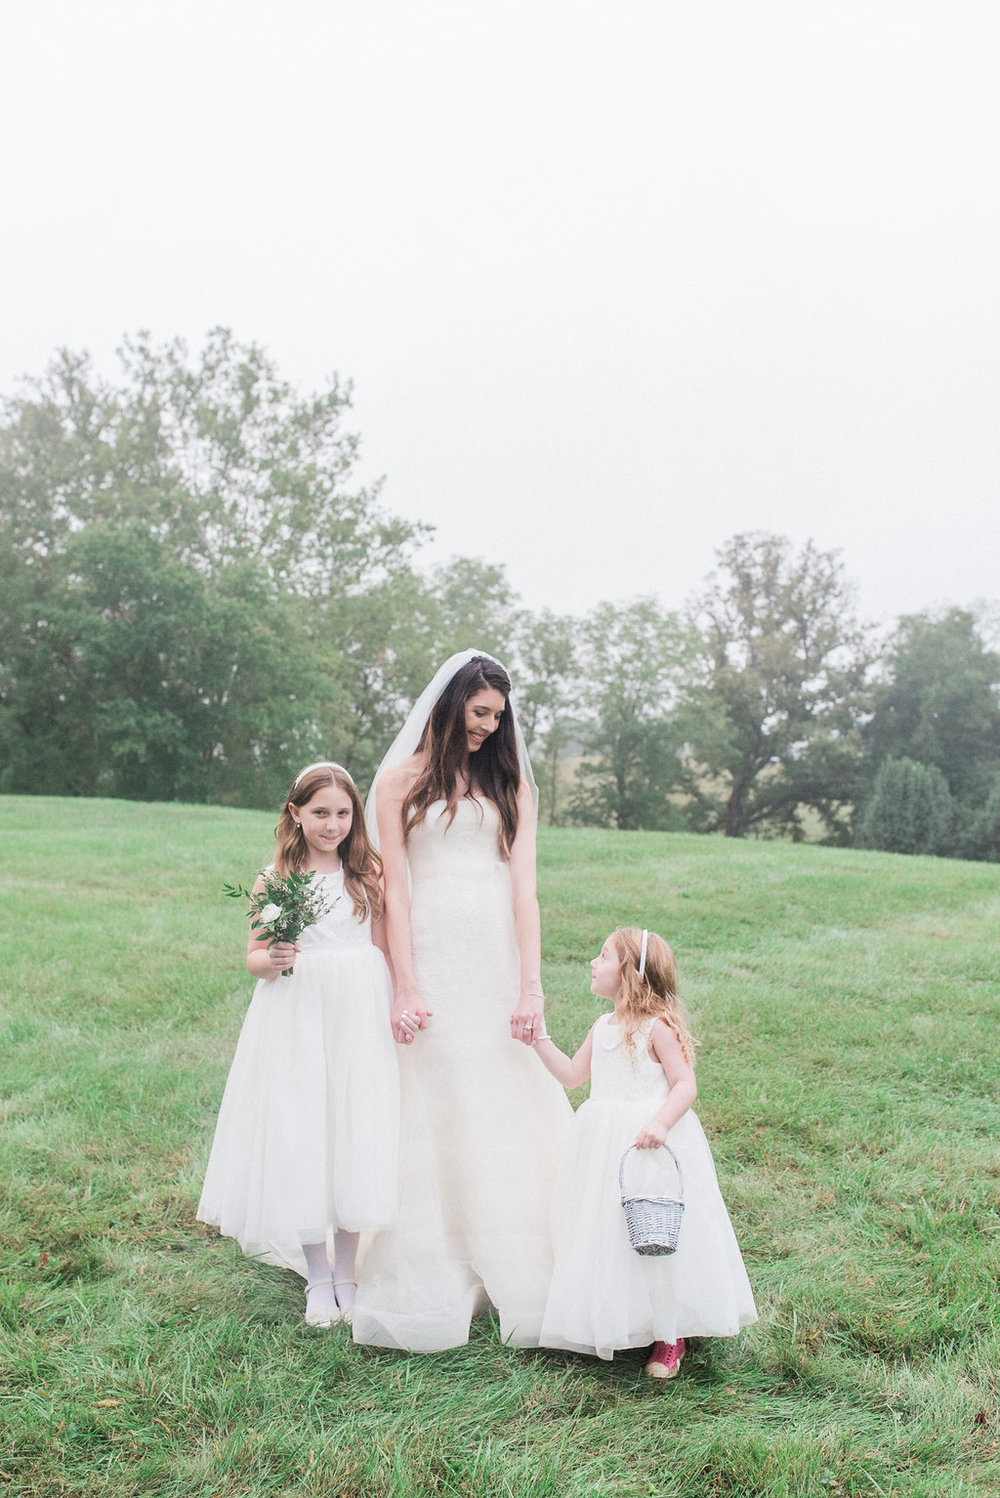 Virginia Countryside Fall Wedding by East Made Event Company fine art destination wedding planner and Julie Paisley Photography as featured on Style Me Pretty98 2.jpg